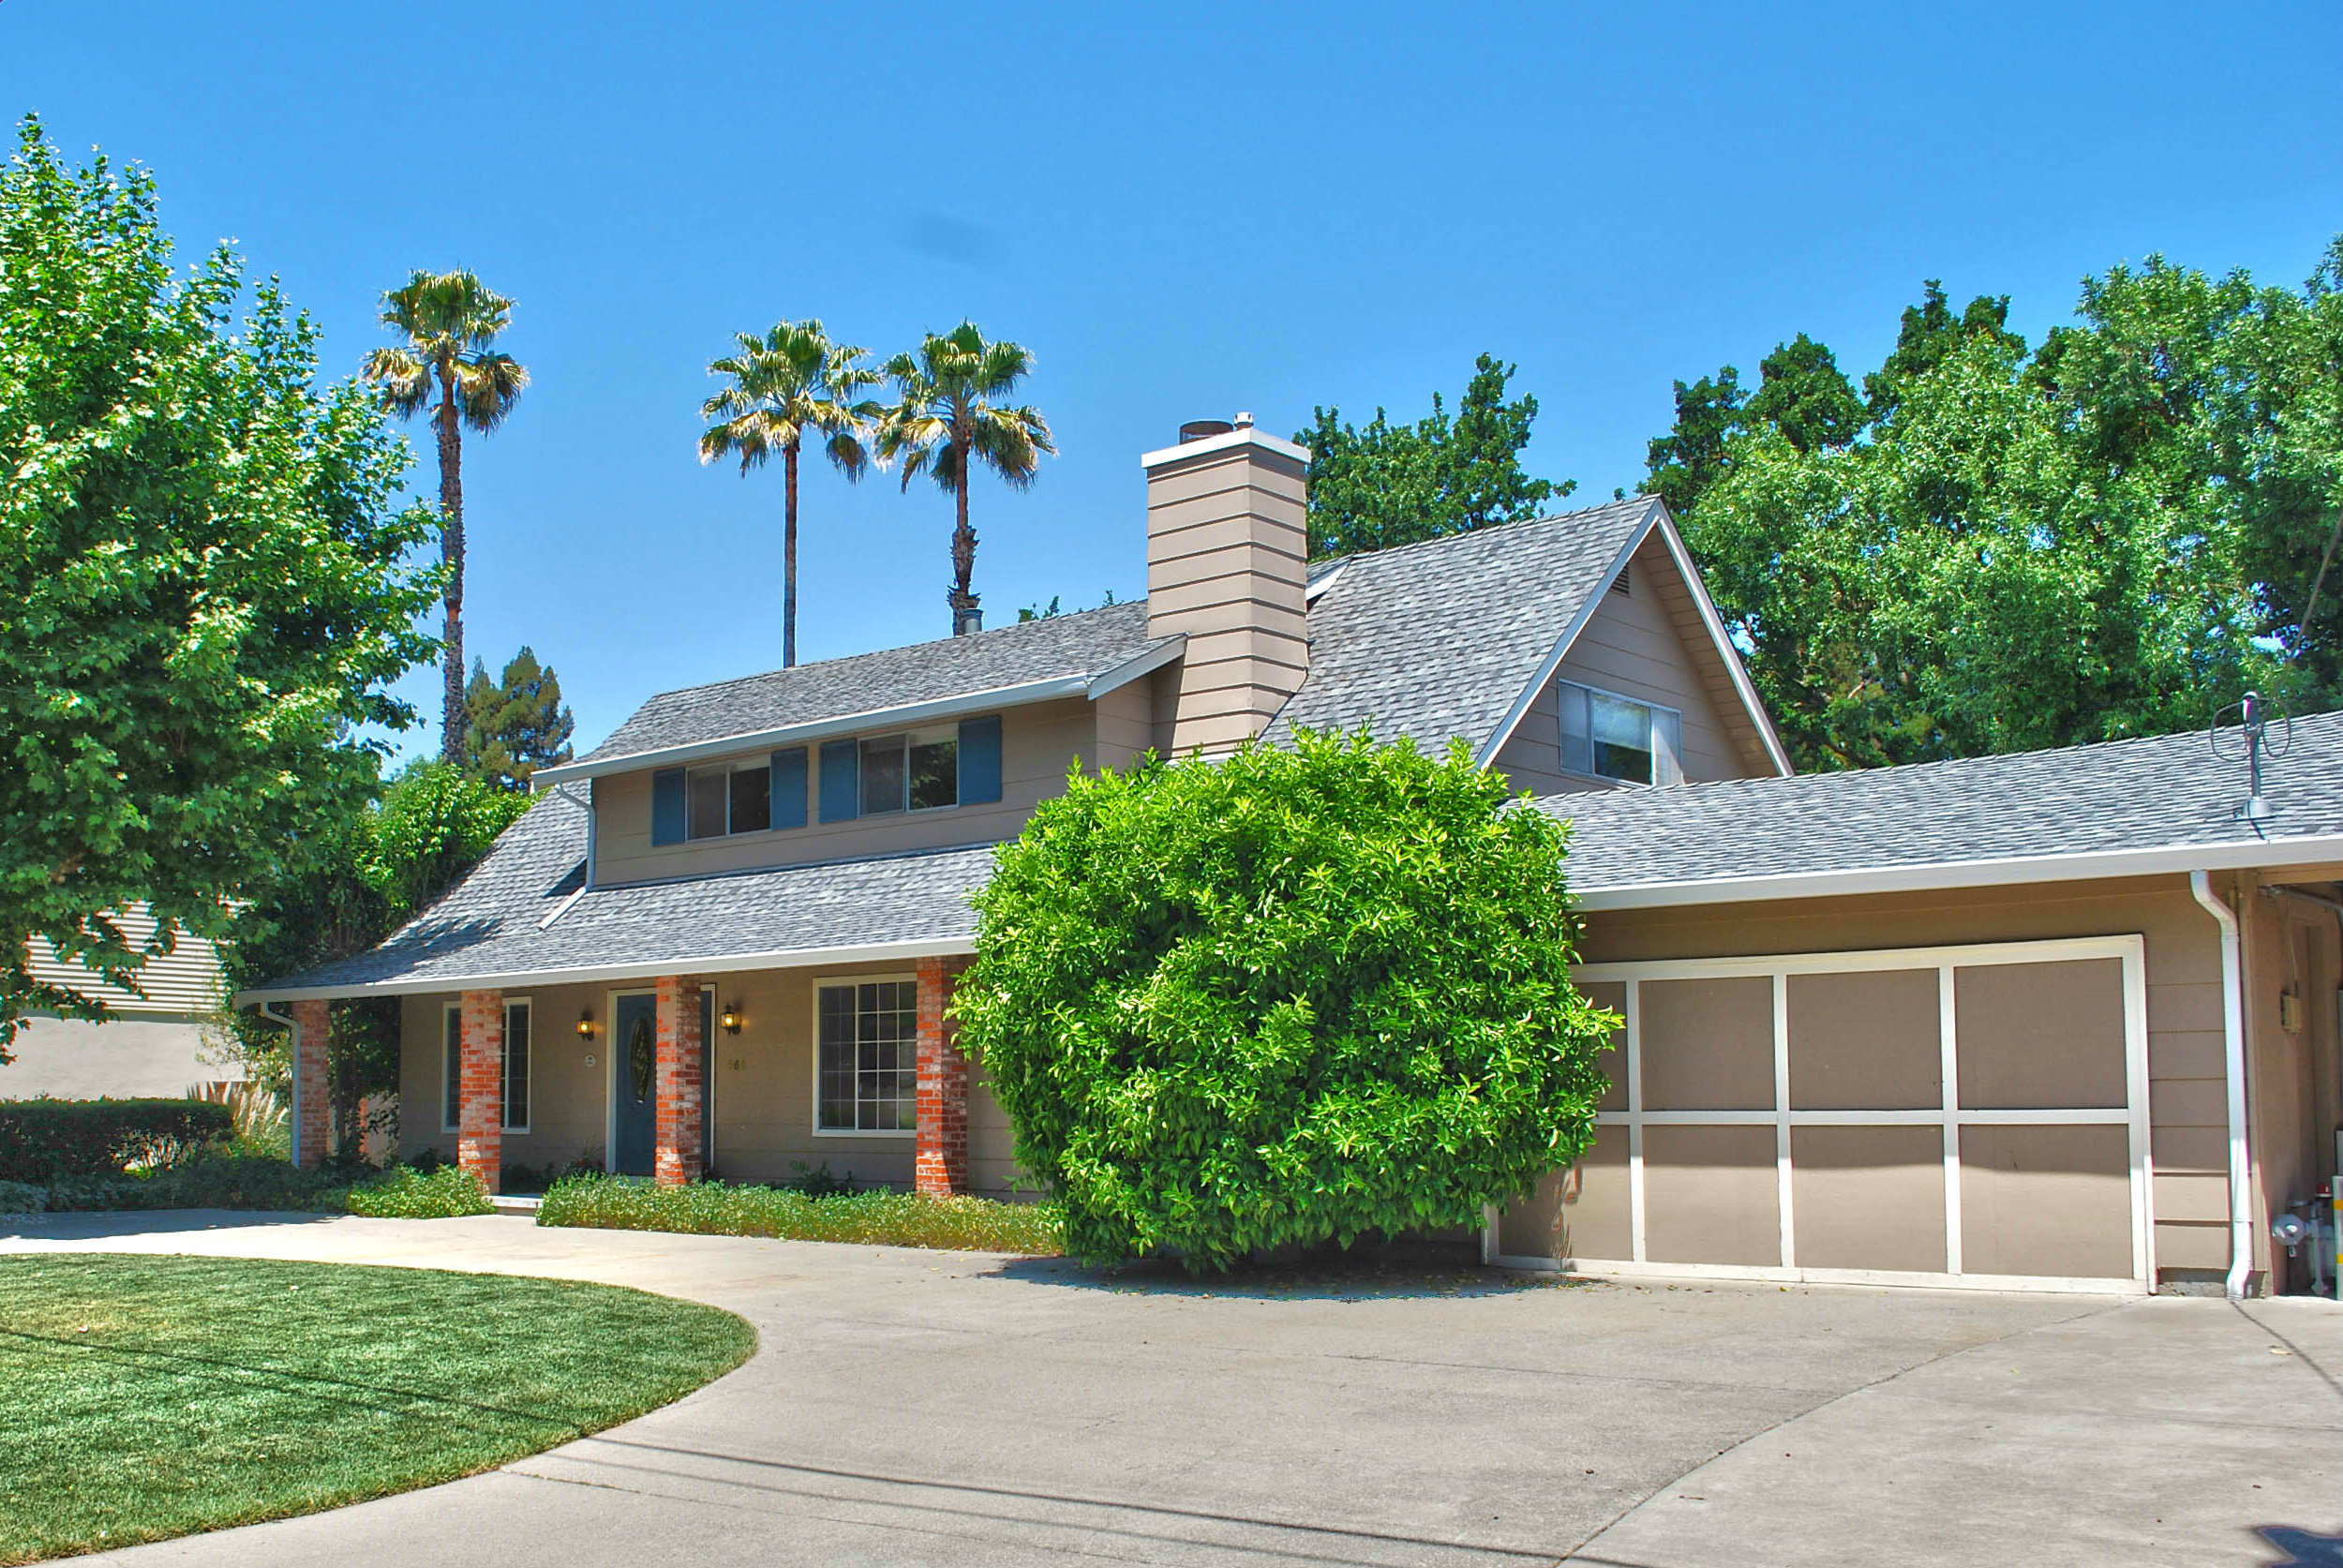 6 BEDROOM BROOKSIDE HOME IN DANVILLE, CA